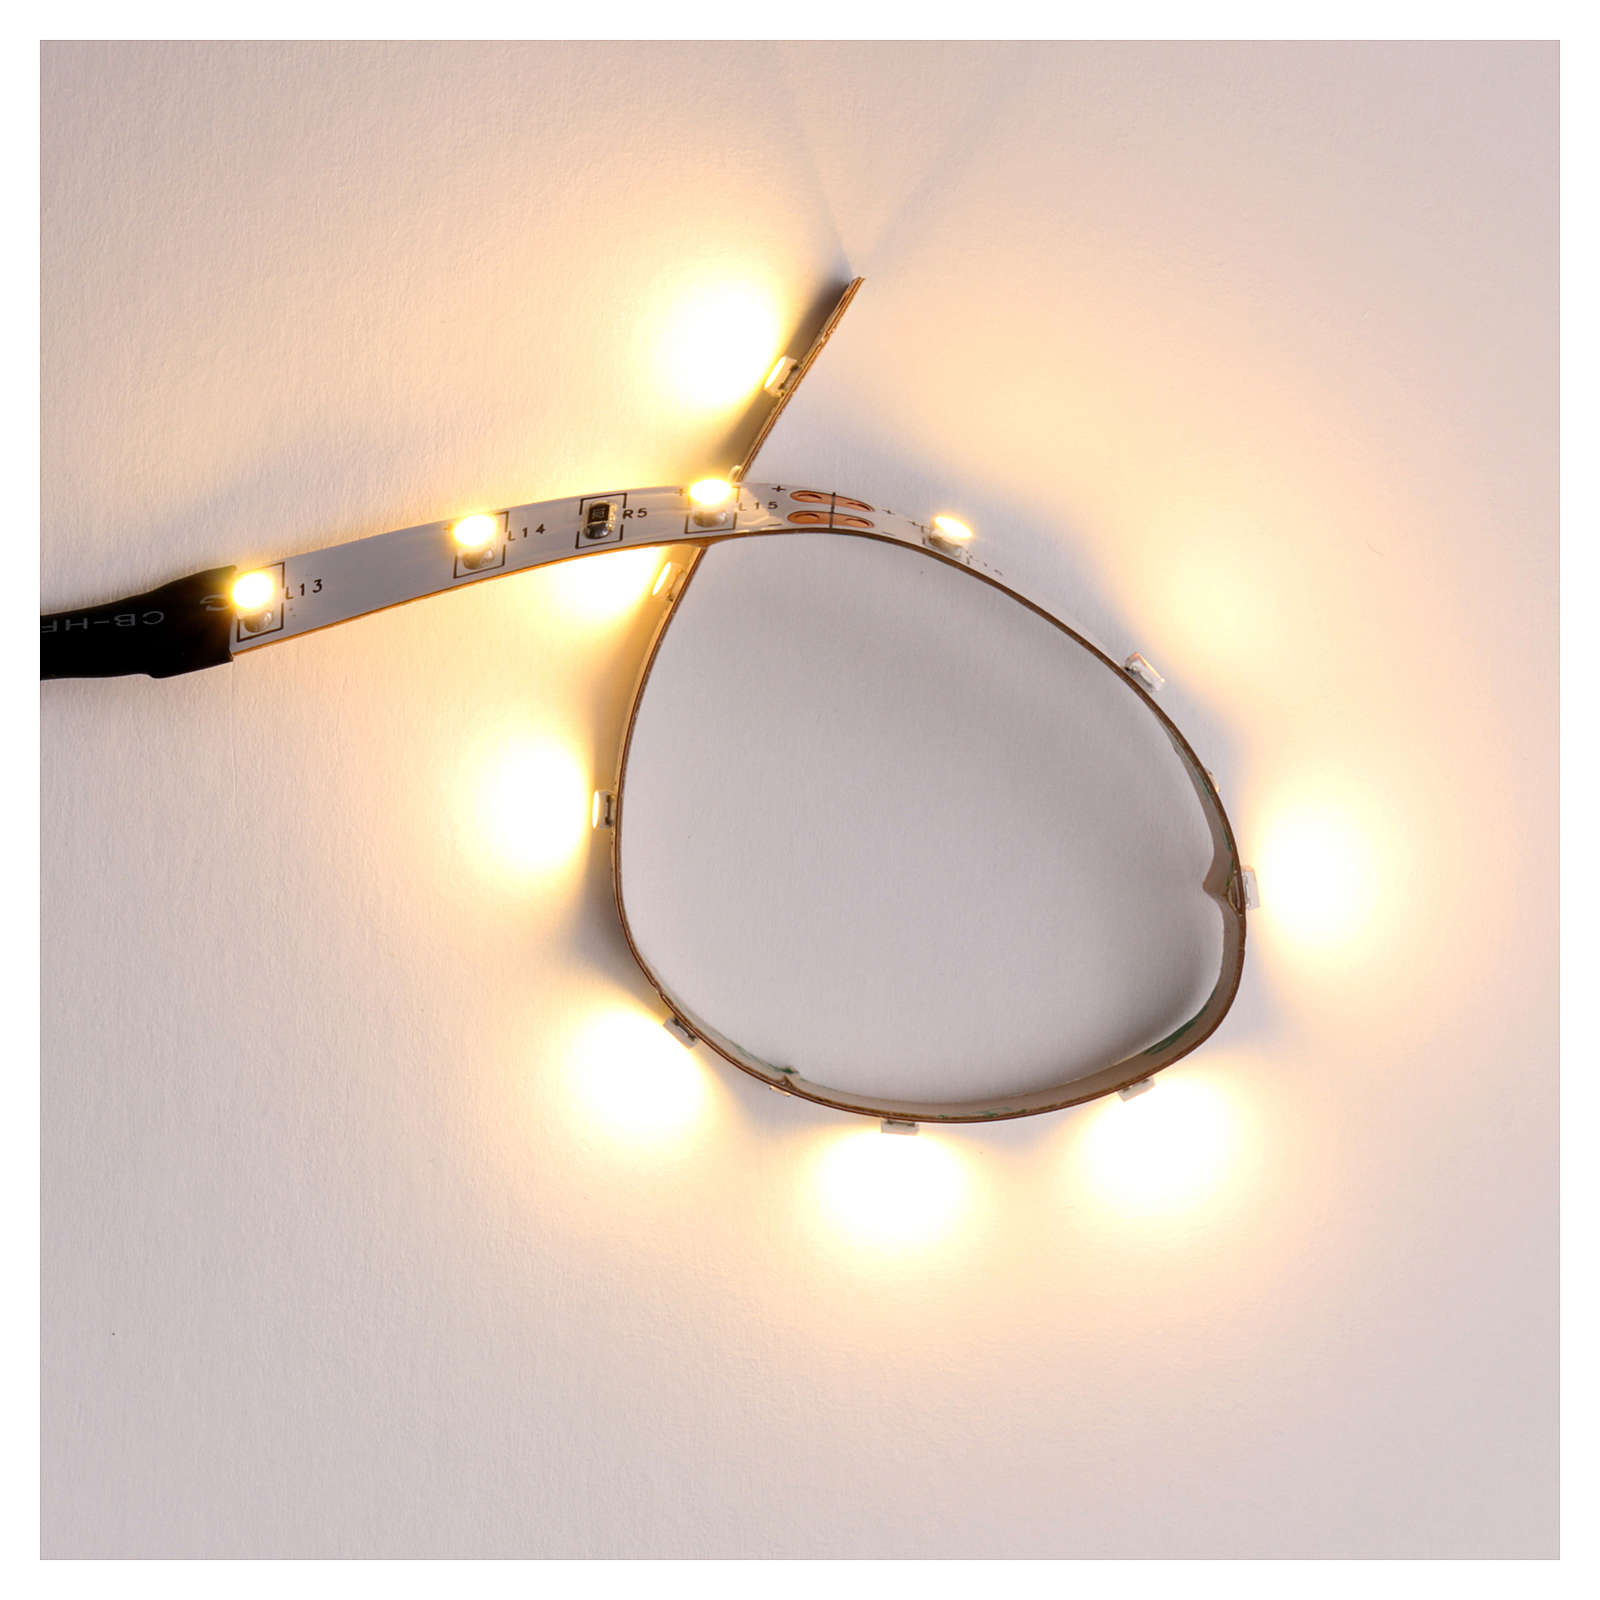 LED strip with 12 lights 0,8x16cm, warm white for Frisalight 4